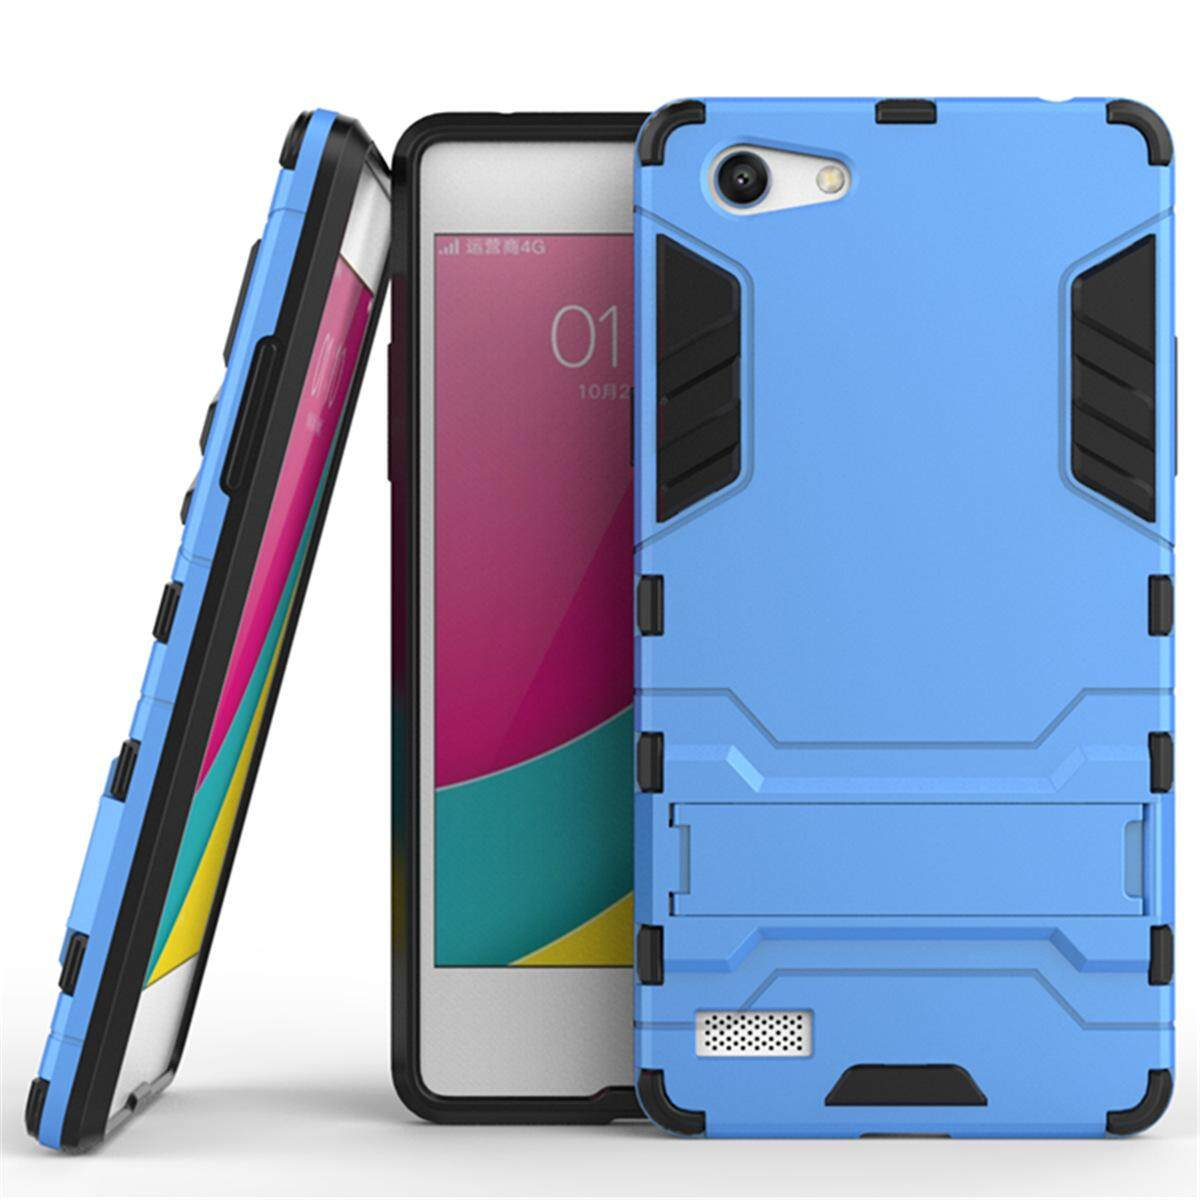 Hình ảnh for OPPO A33 & NEO7 Case 2in1 PC+TPU Hybrid Slim Back Case Ultra Thin Armor Cover, with Kickstand Holder, Glossy, Minimalist, Casual